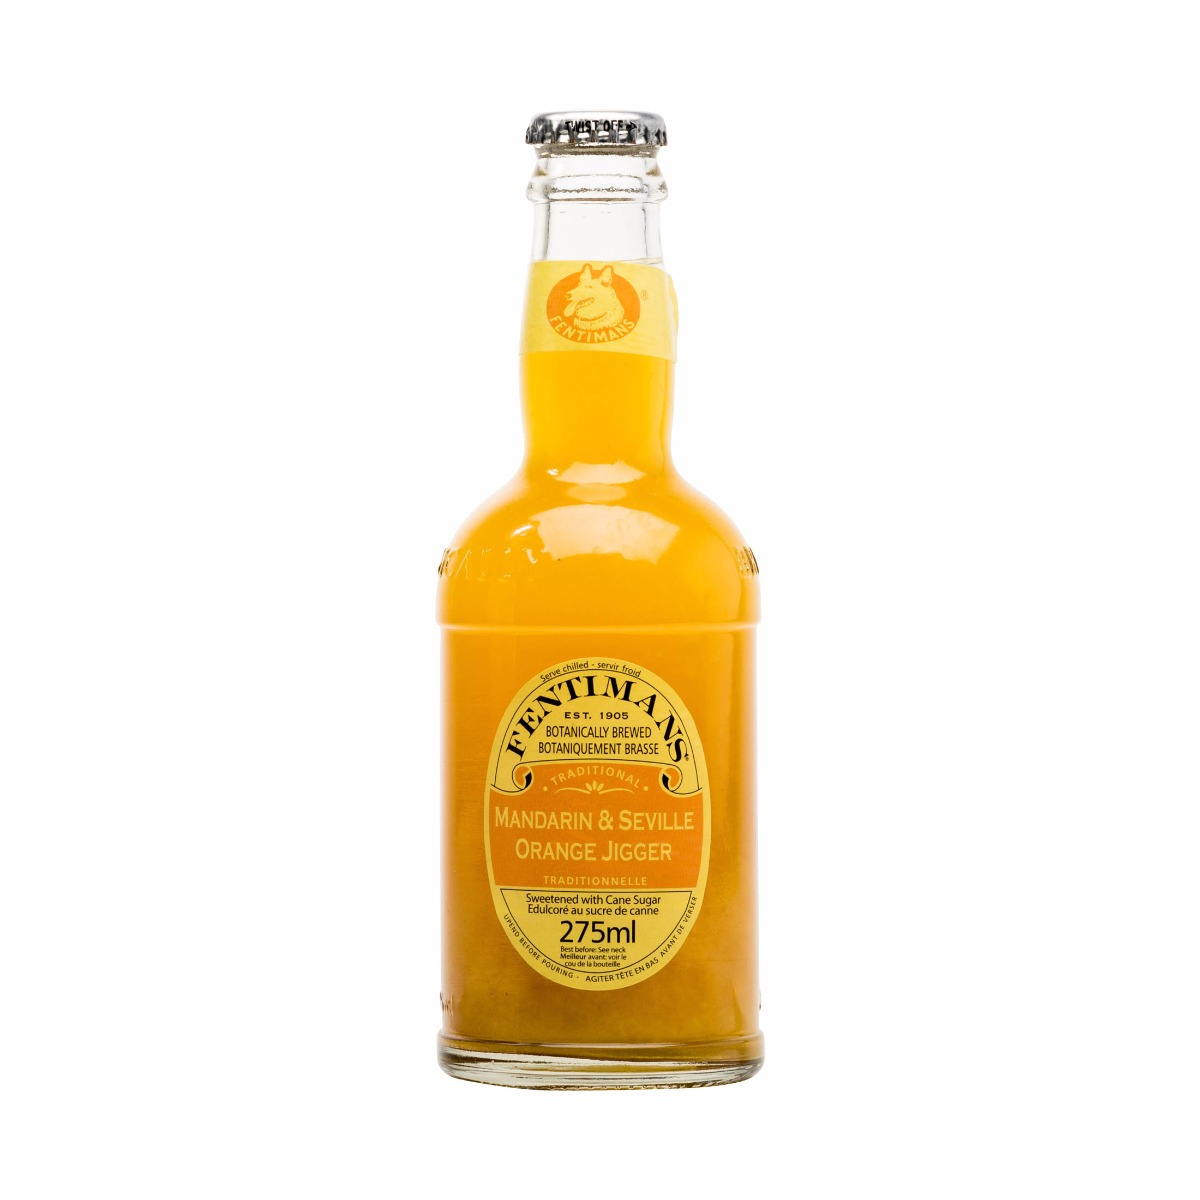 MANDARIN & SEVILLE ORANGE JIGGER 275ML